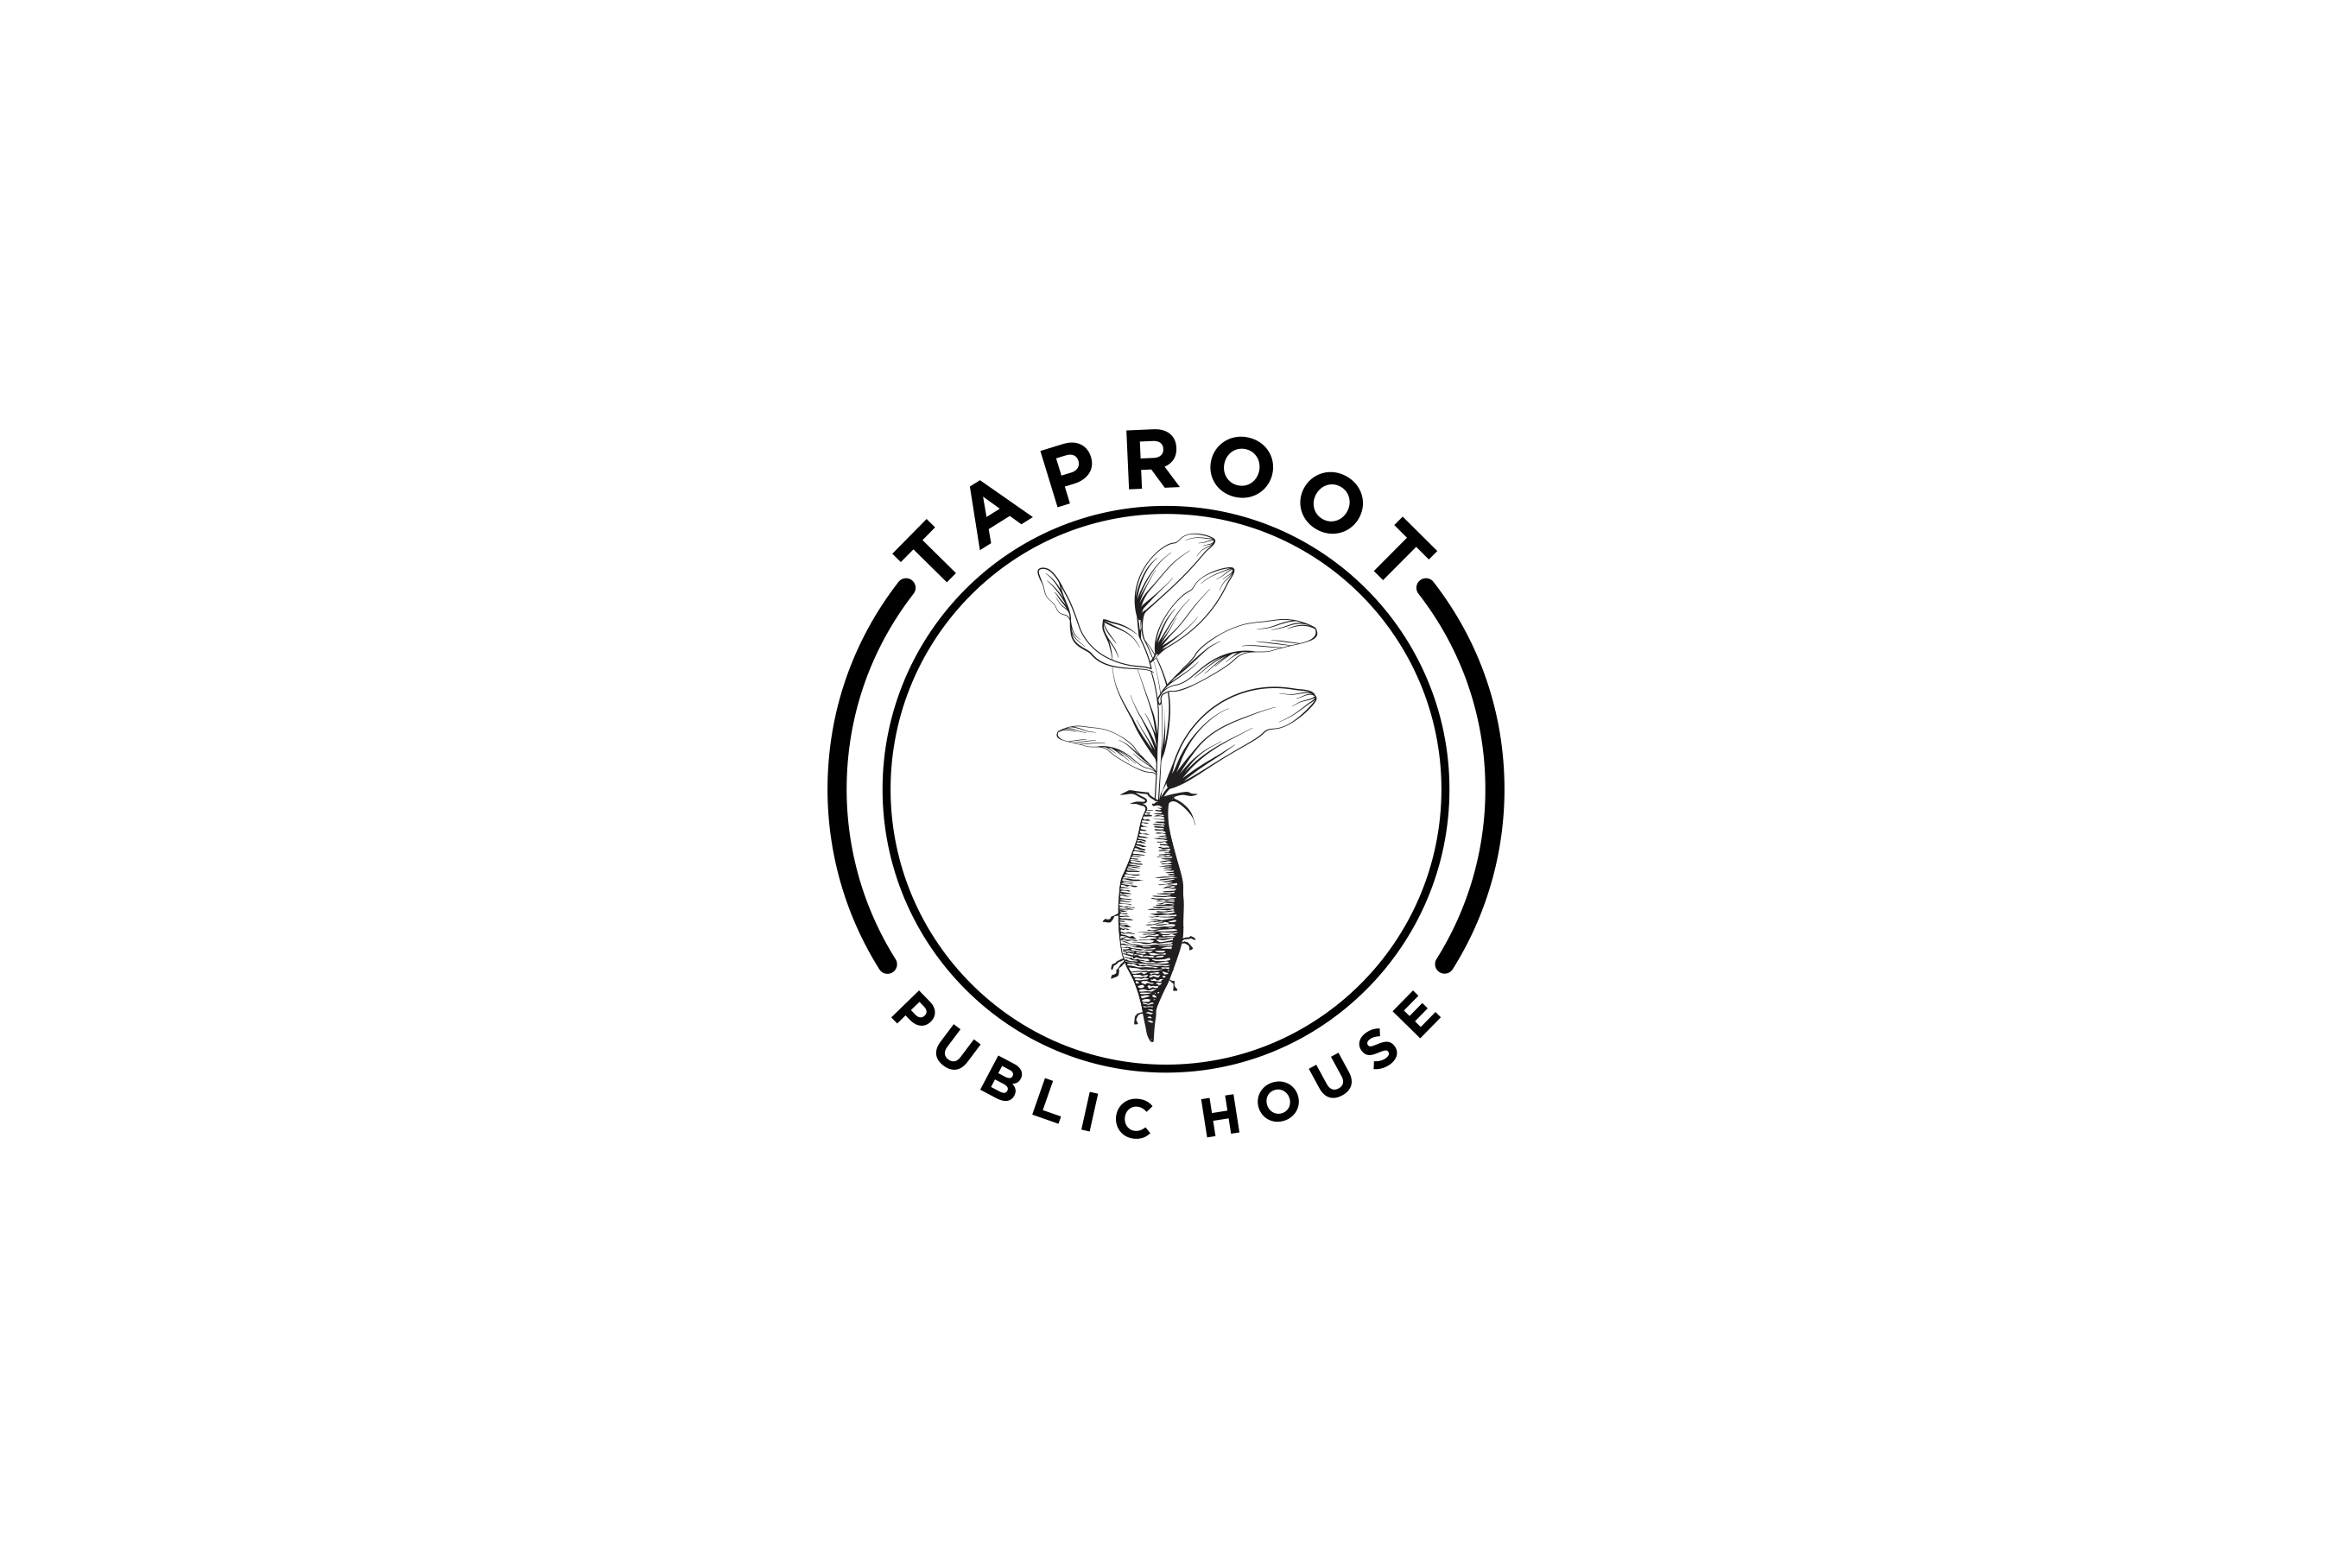 Taproot Public House